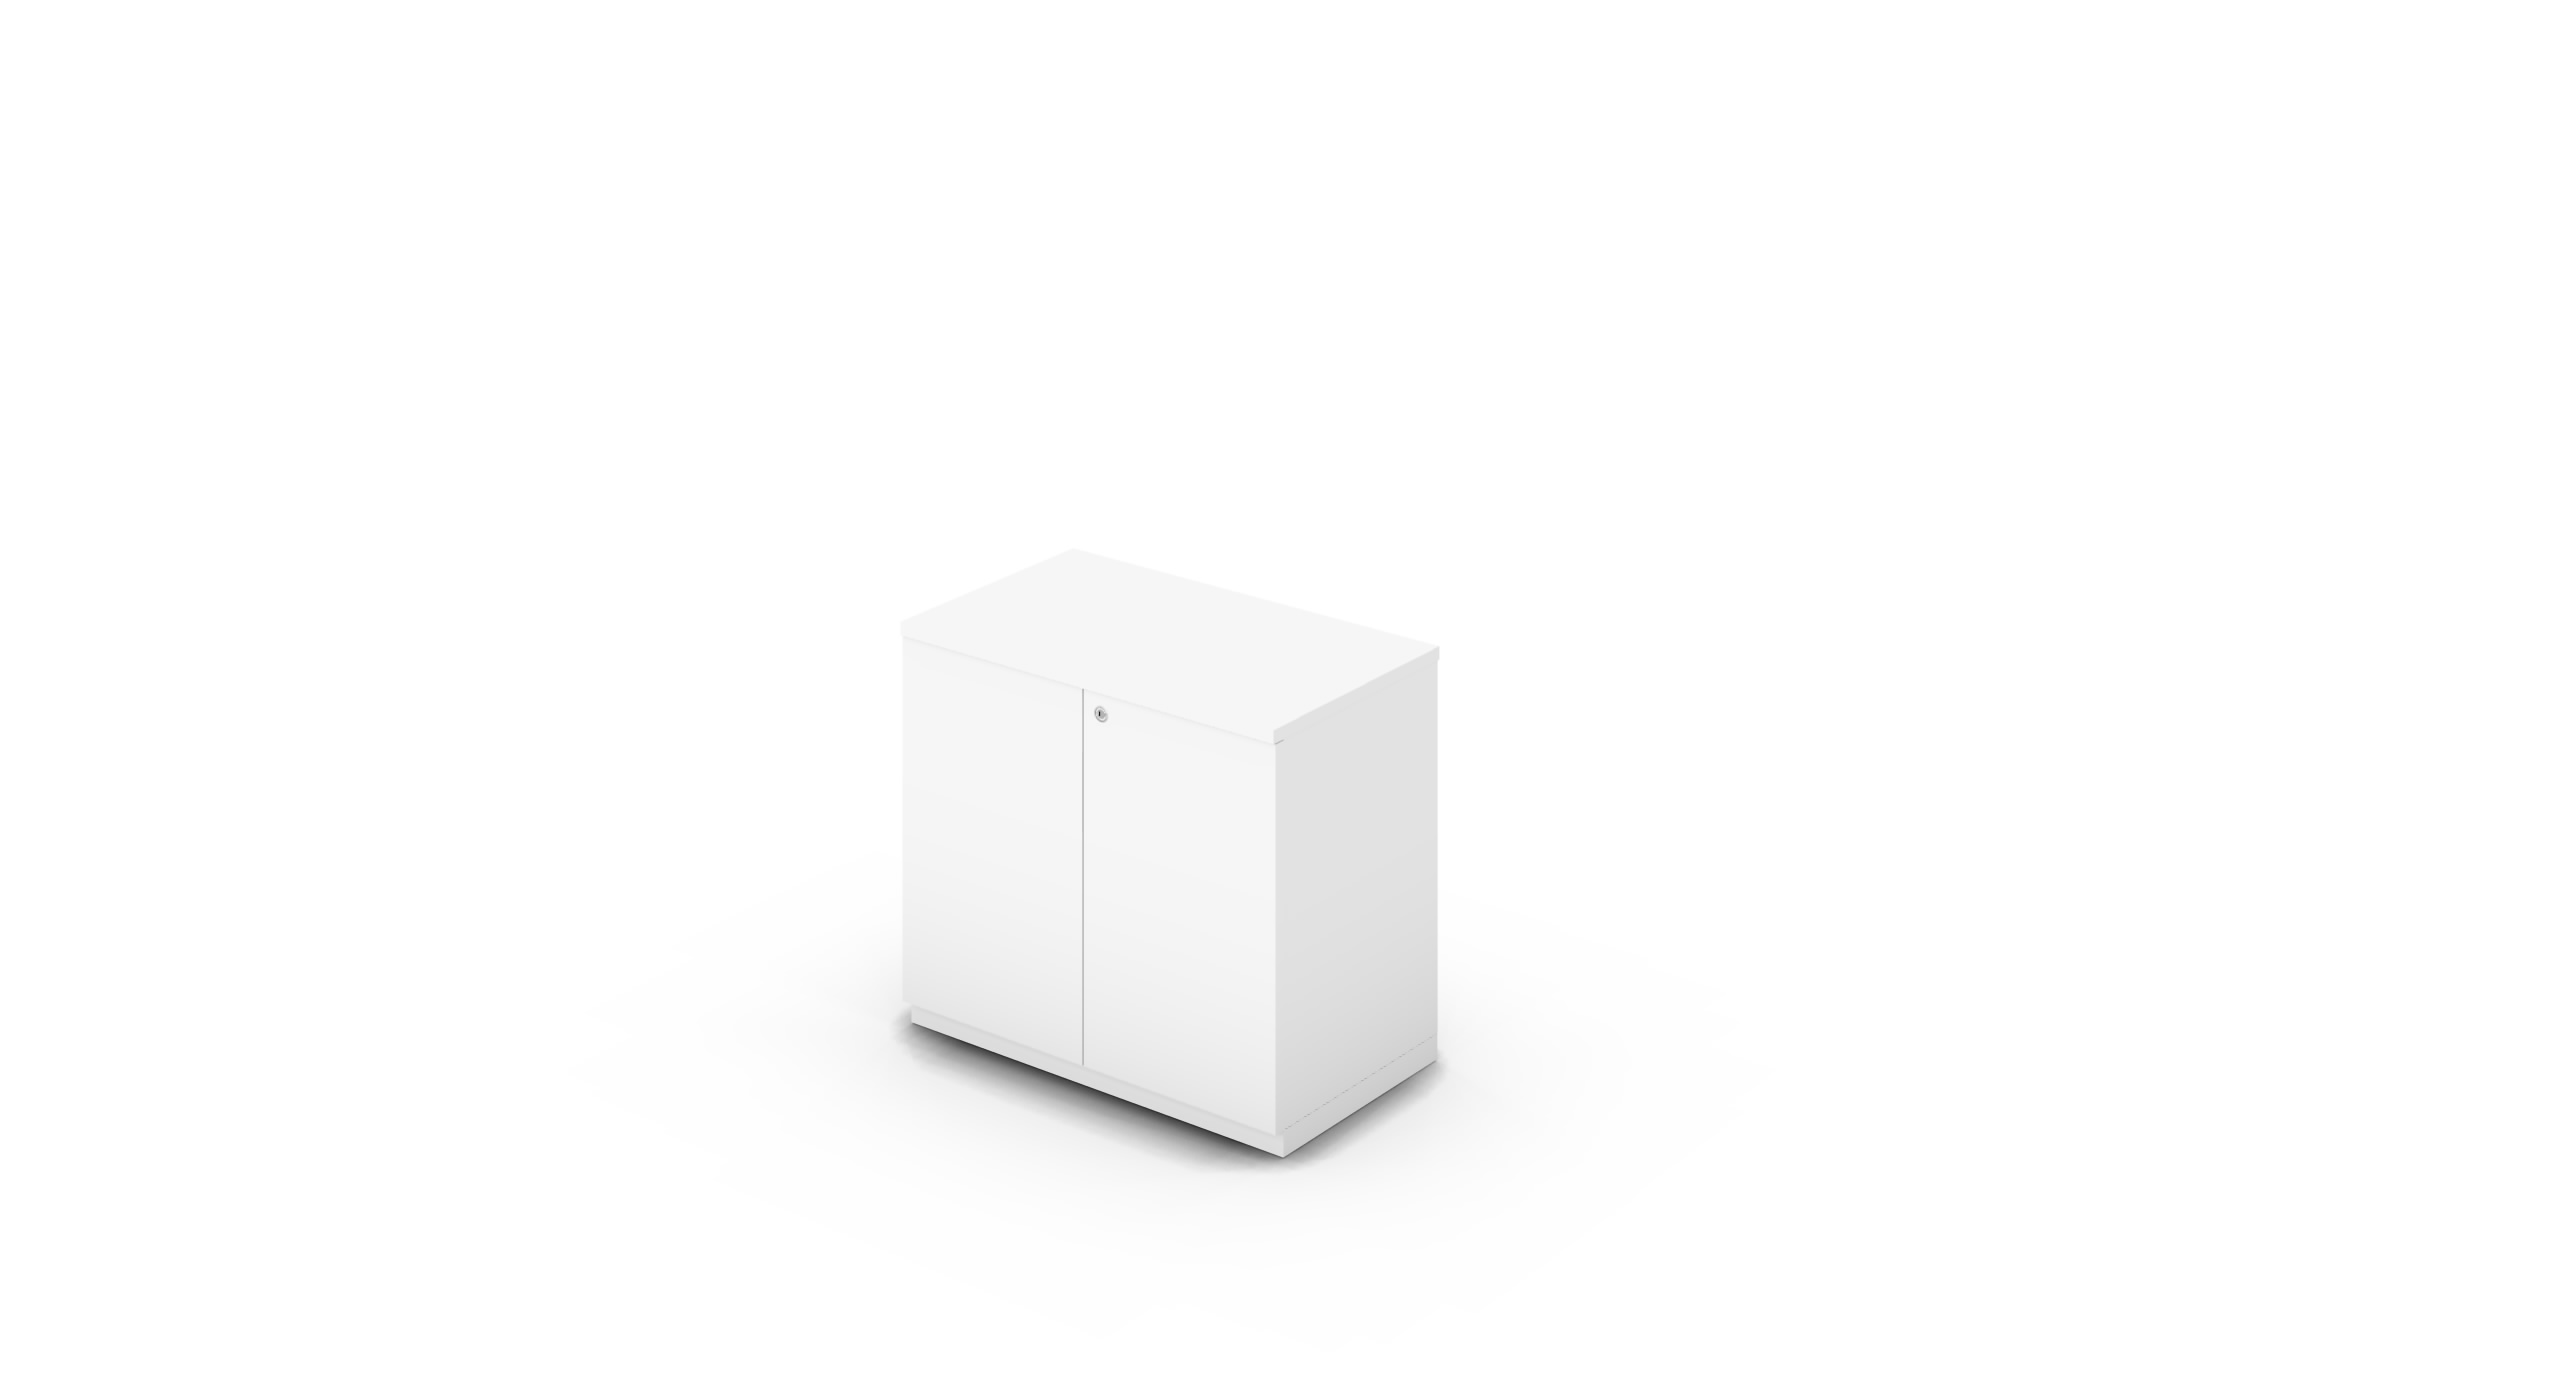 Cabinet_800x450x775_HD_White_Push_WithCylinder